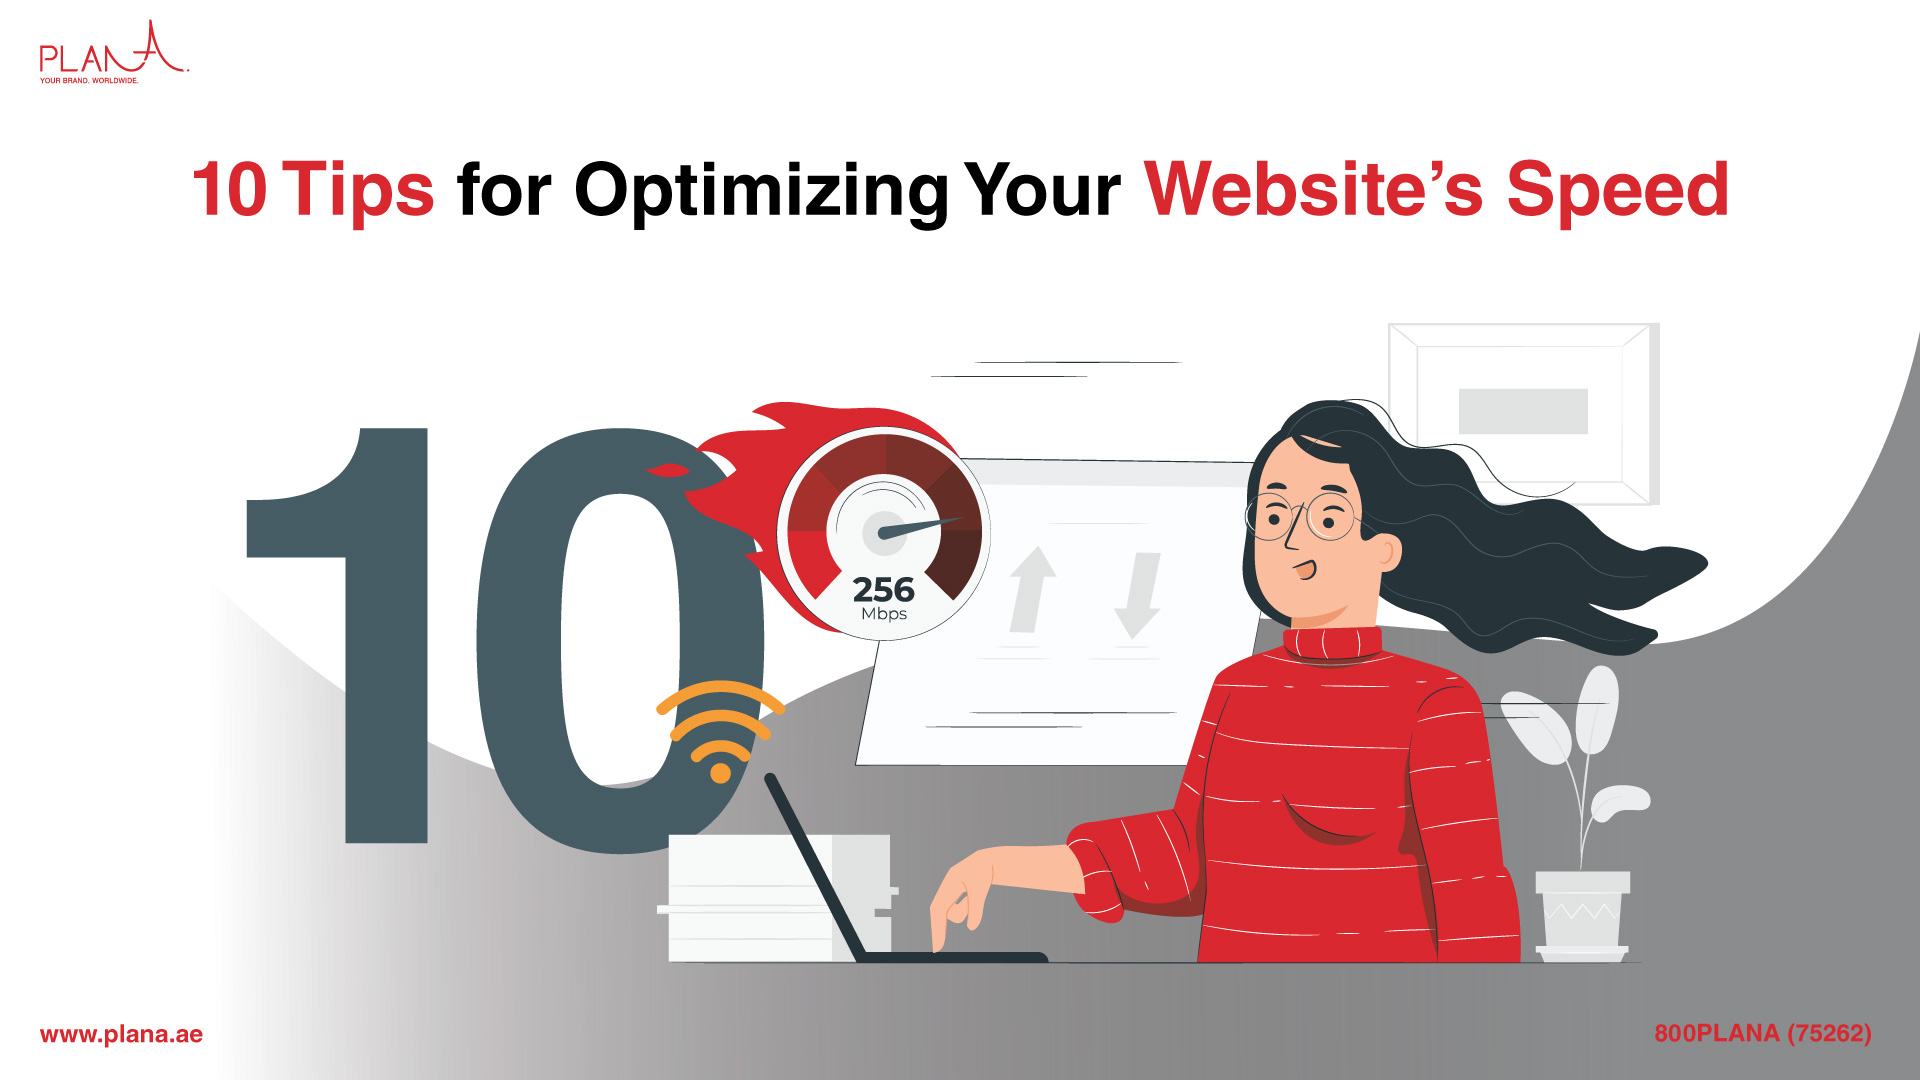 10 Tips for Optimizing Your Website's Speed